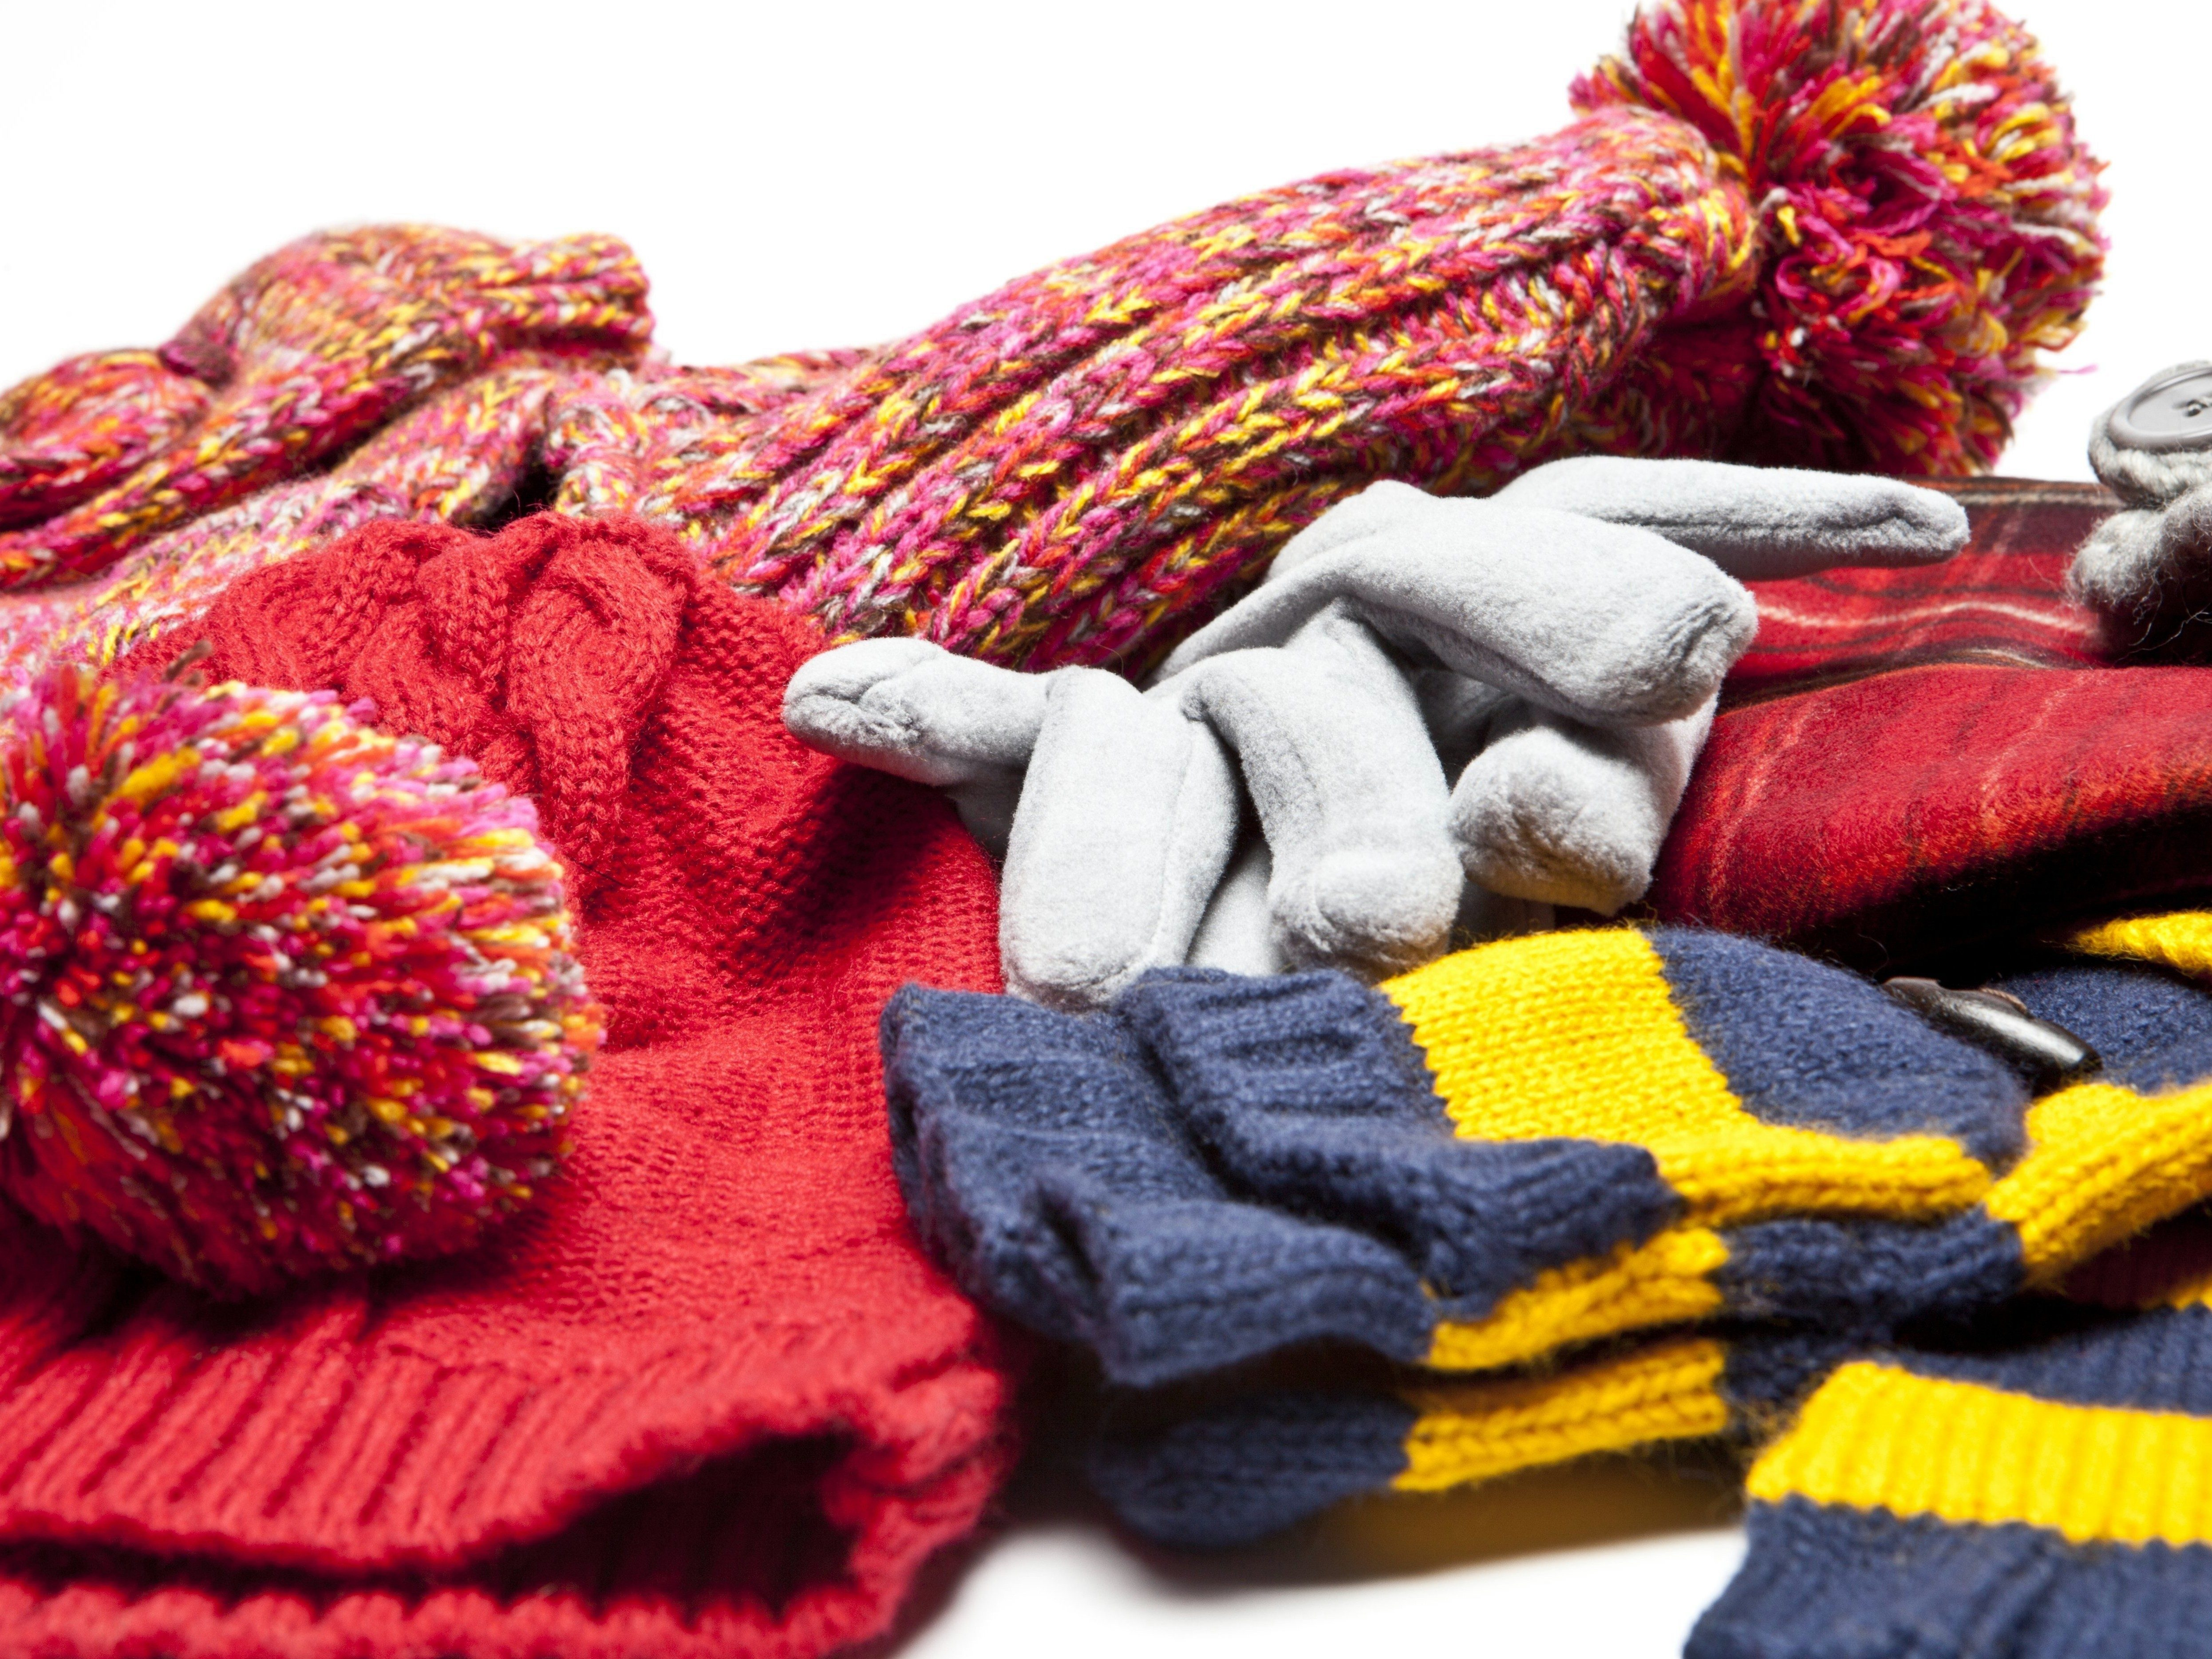 Additional Emergency Gear: Cold Weather Clothing